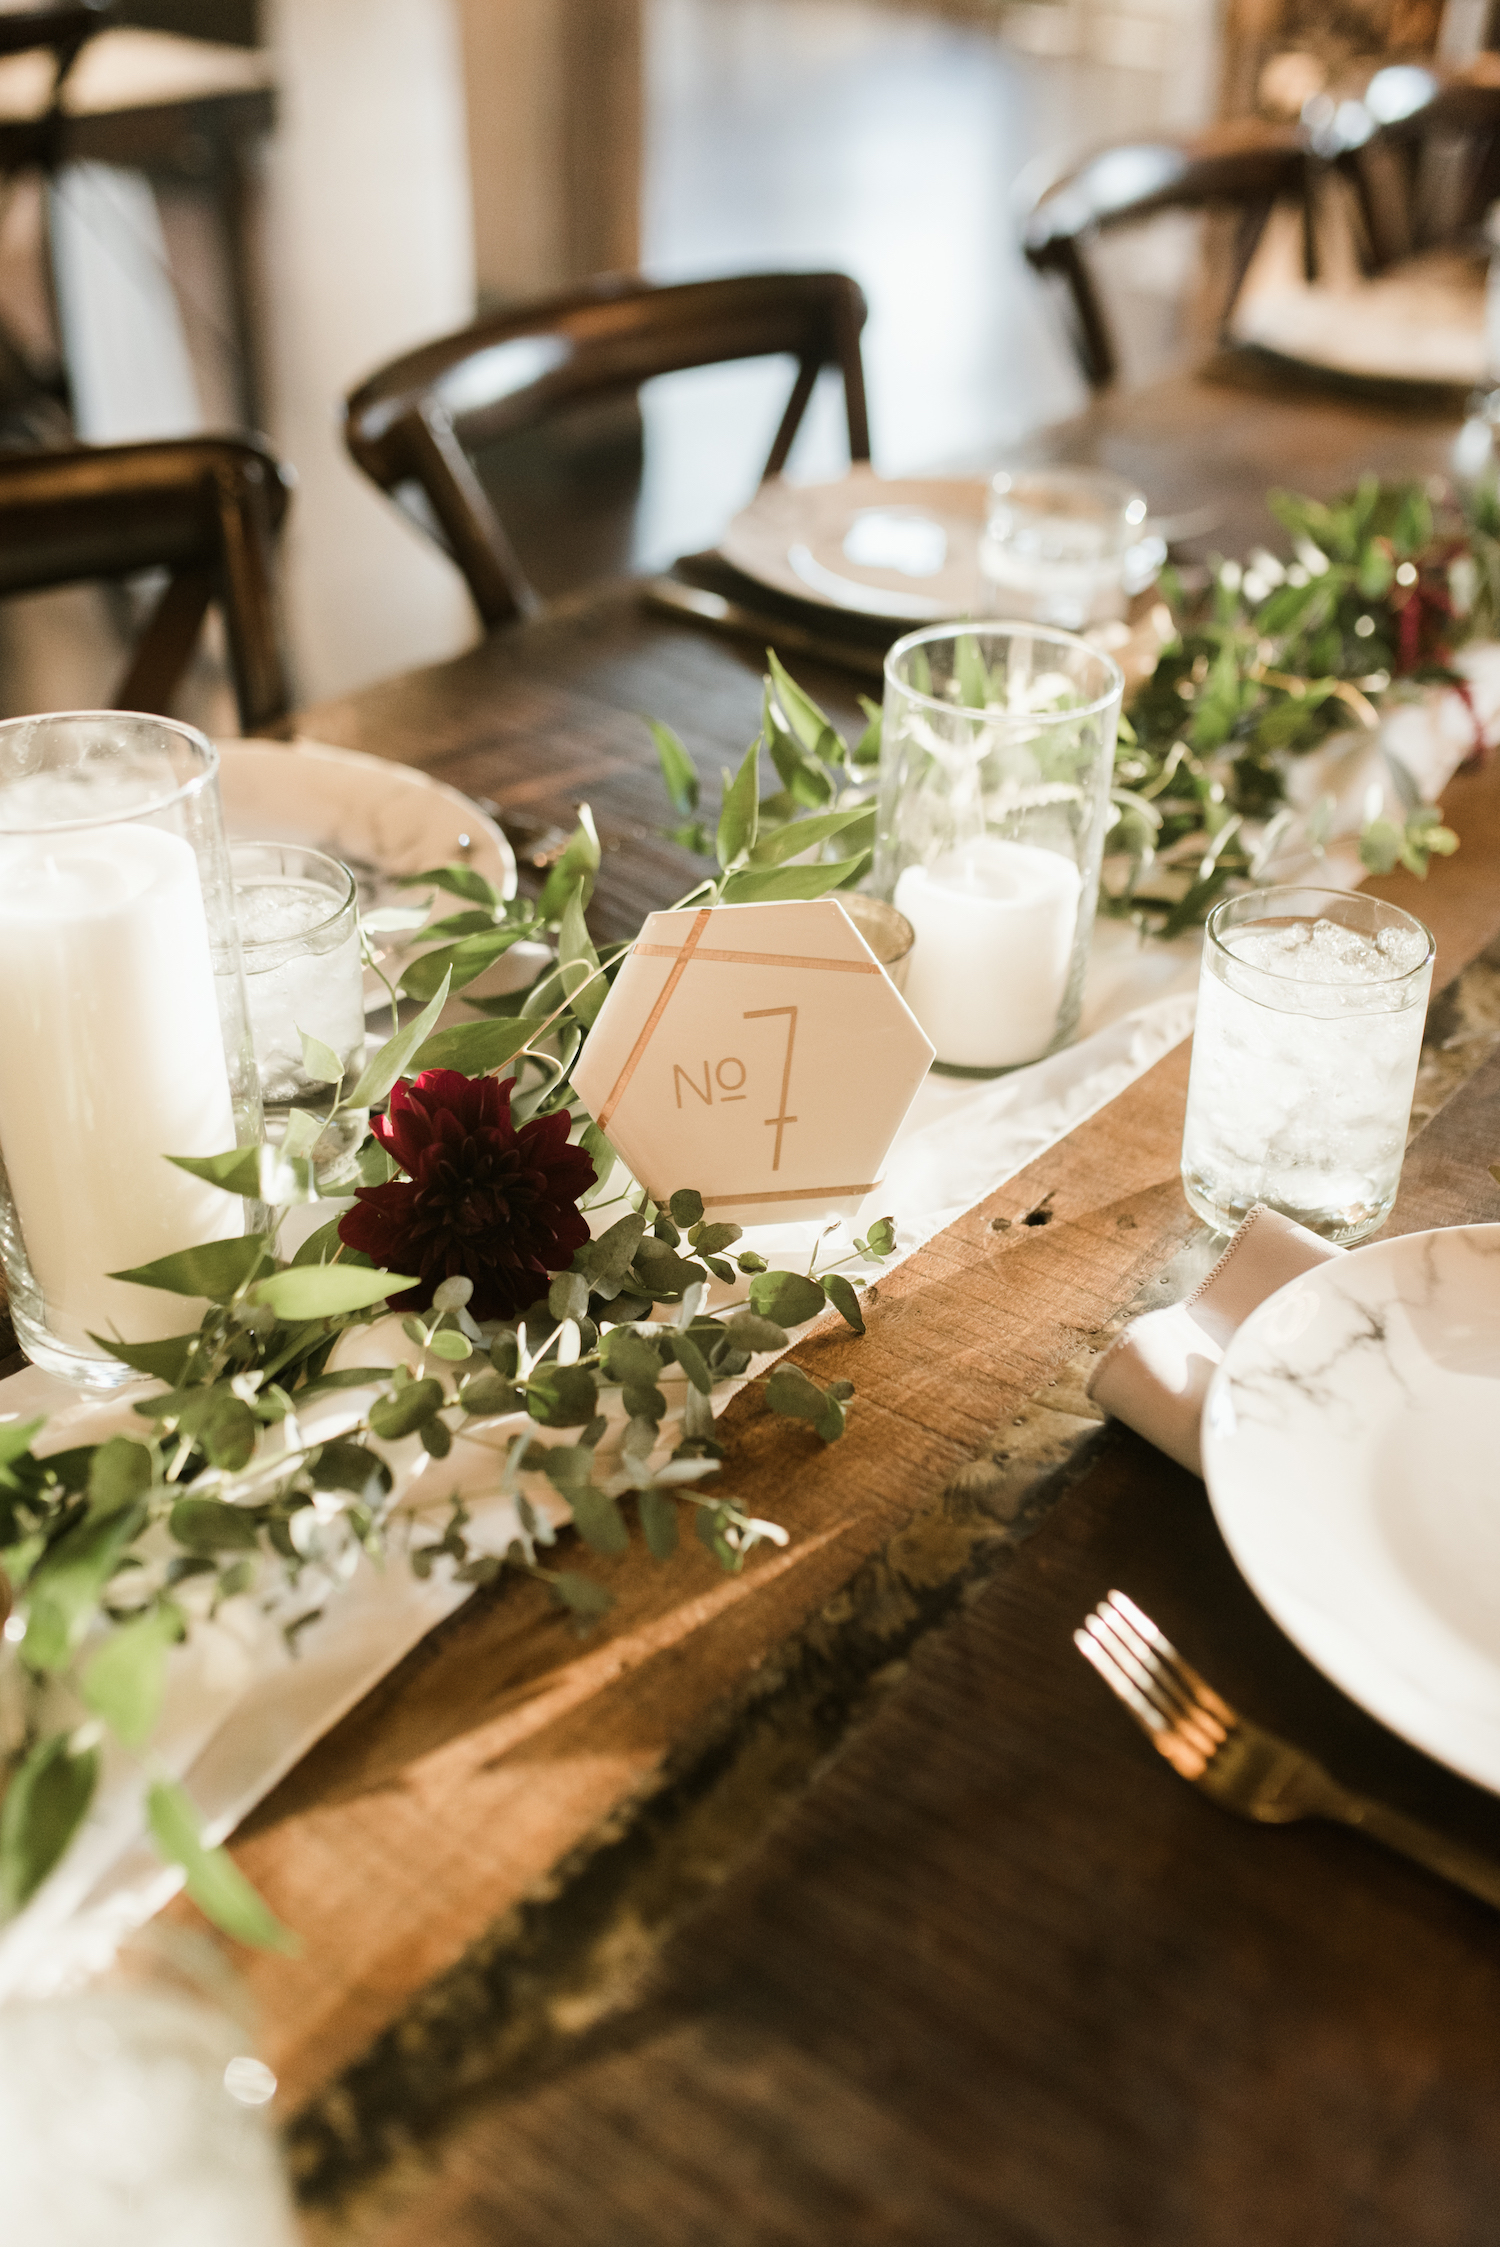 Marble Wedding Table Number: Upscale Marble Graystone Quarry Wedding featured on Nashville Bride Guide